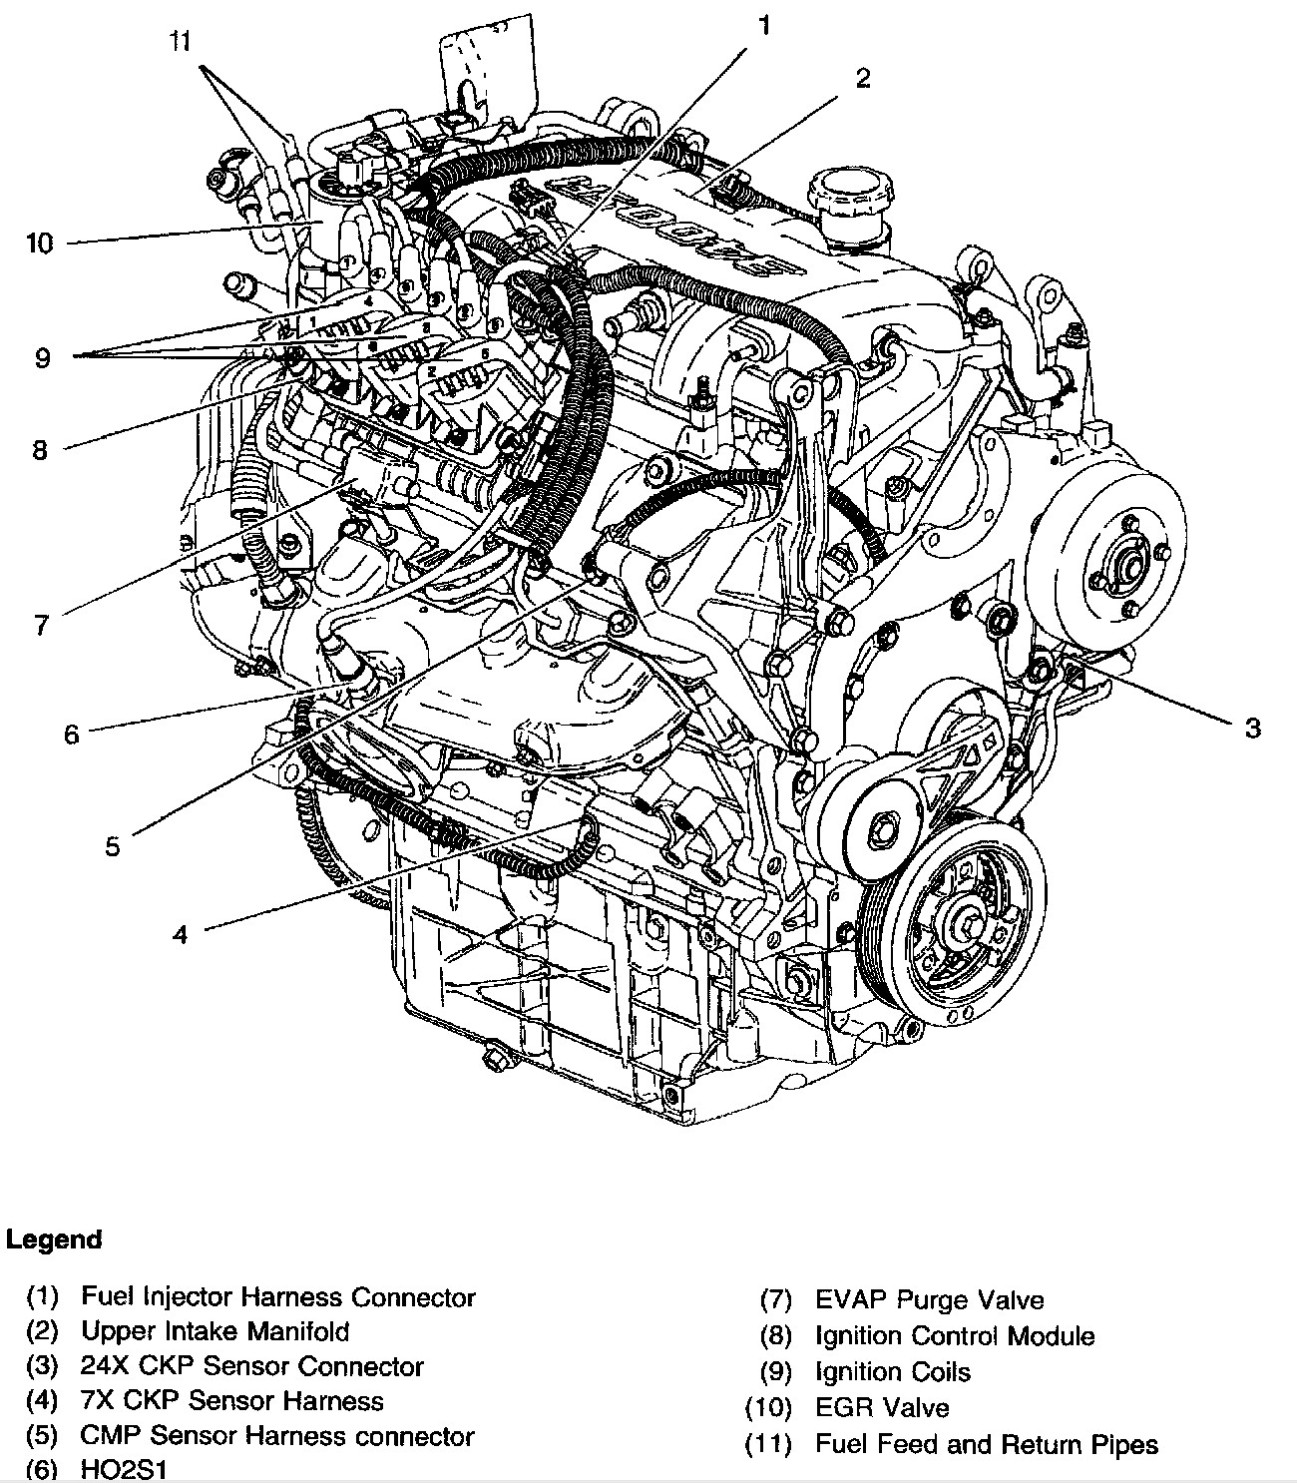 2003 Chevy Impala Engine Diagram Chevrolet Engine Diagrams Wiring Diagram Options Of 2003 Chevy Impala Engine Diagram B4cdc 73 Gmc Wiring Harness